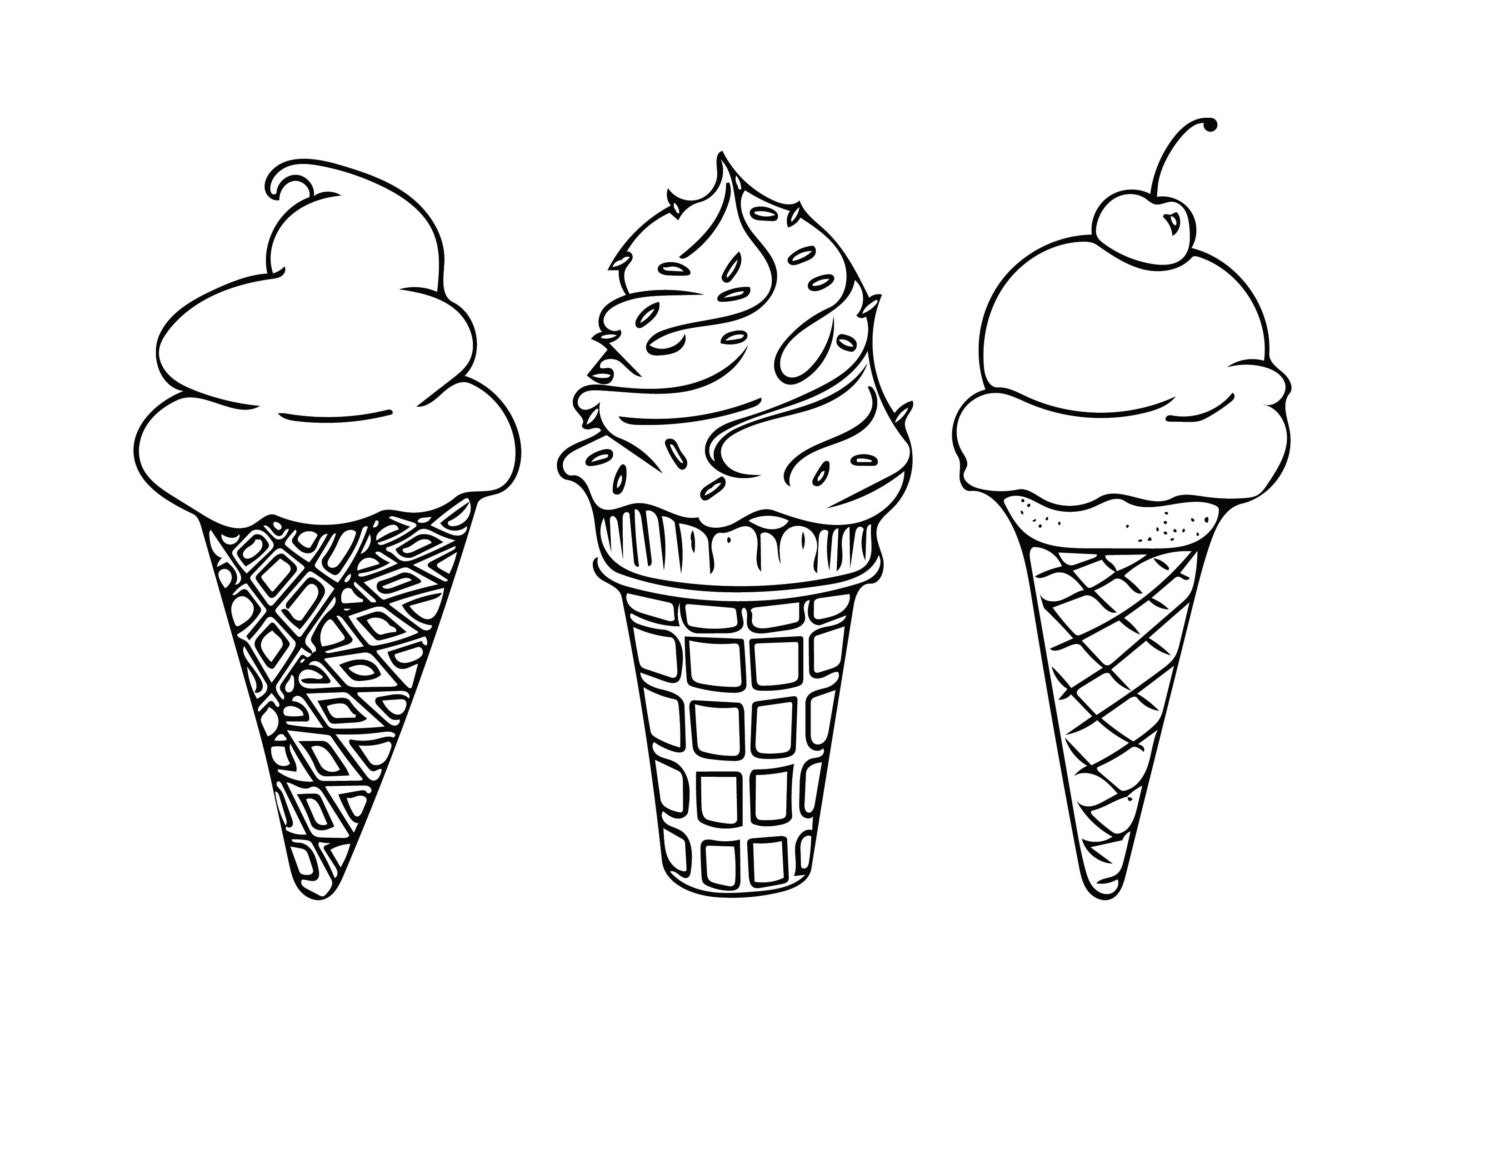 PRINTABLE COLORING SHEET Instant Download Ice Cream Cones Coloring Sheet Kids Activities Adult Coloring Page 85x11